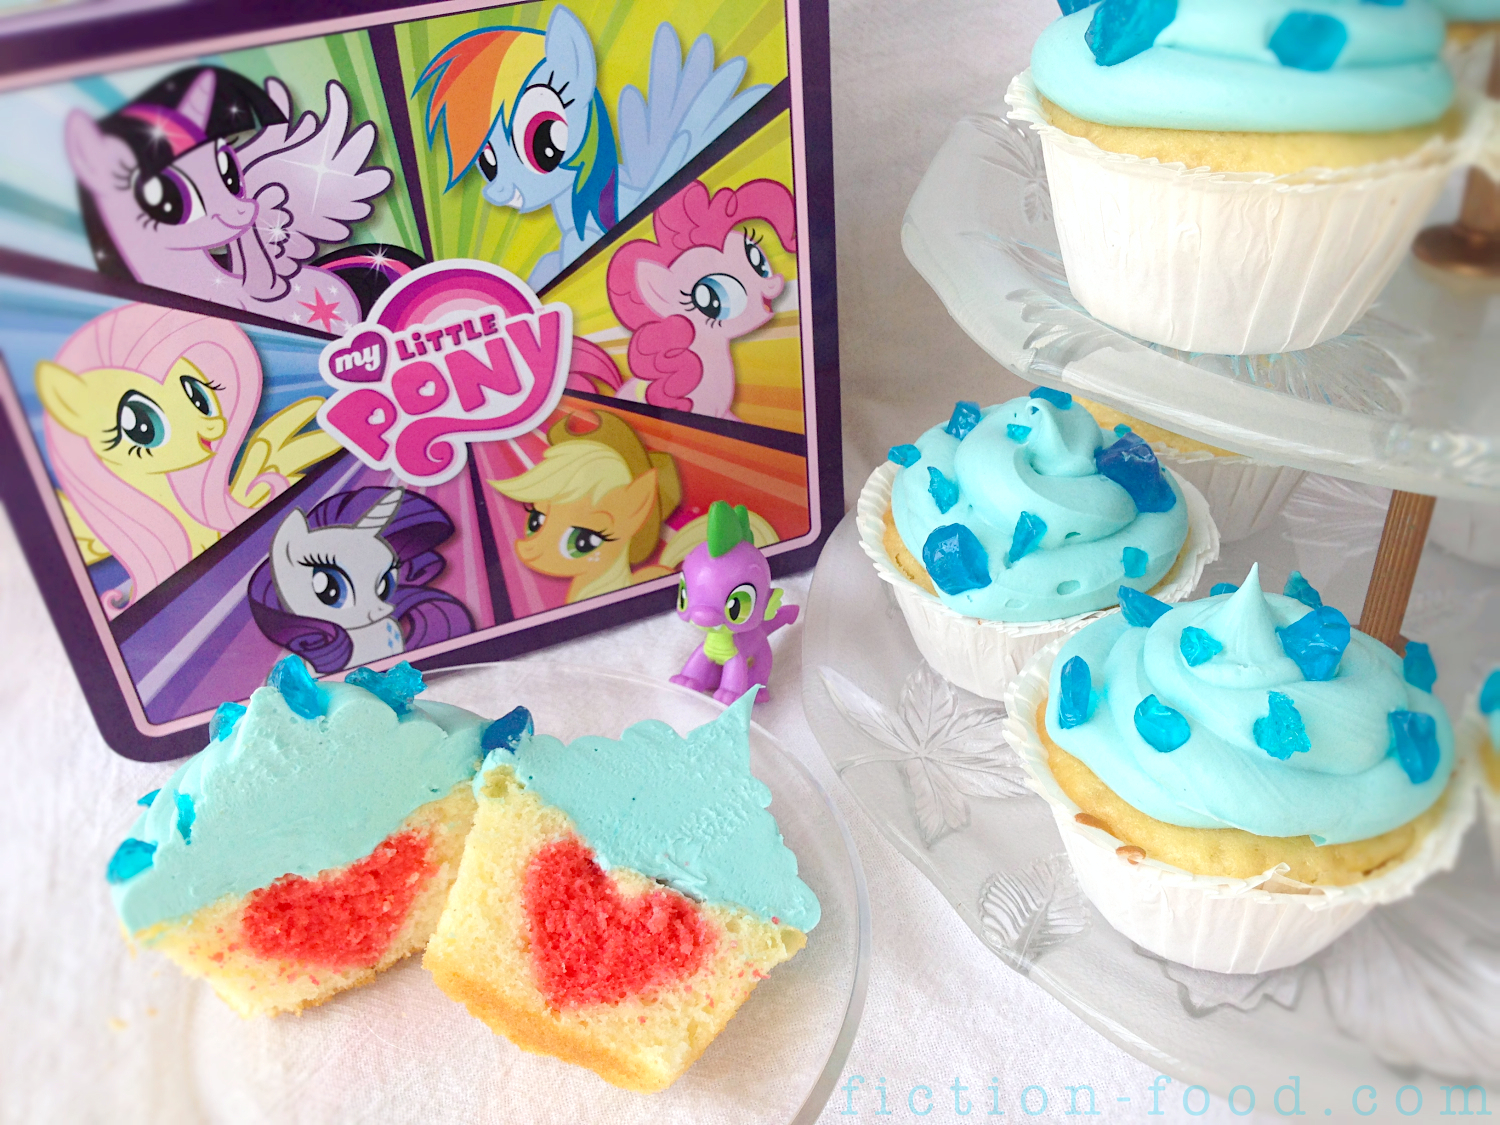 FictionFood Caf Sapphire Cupcakes from My Little Pony